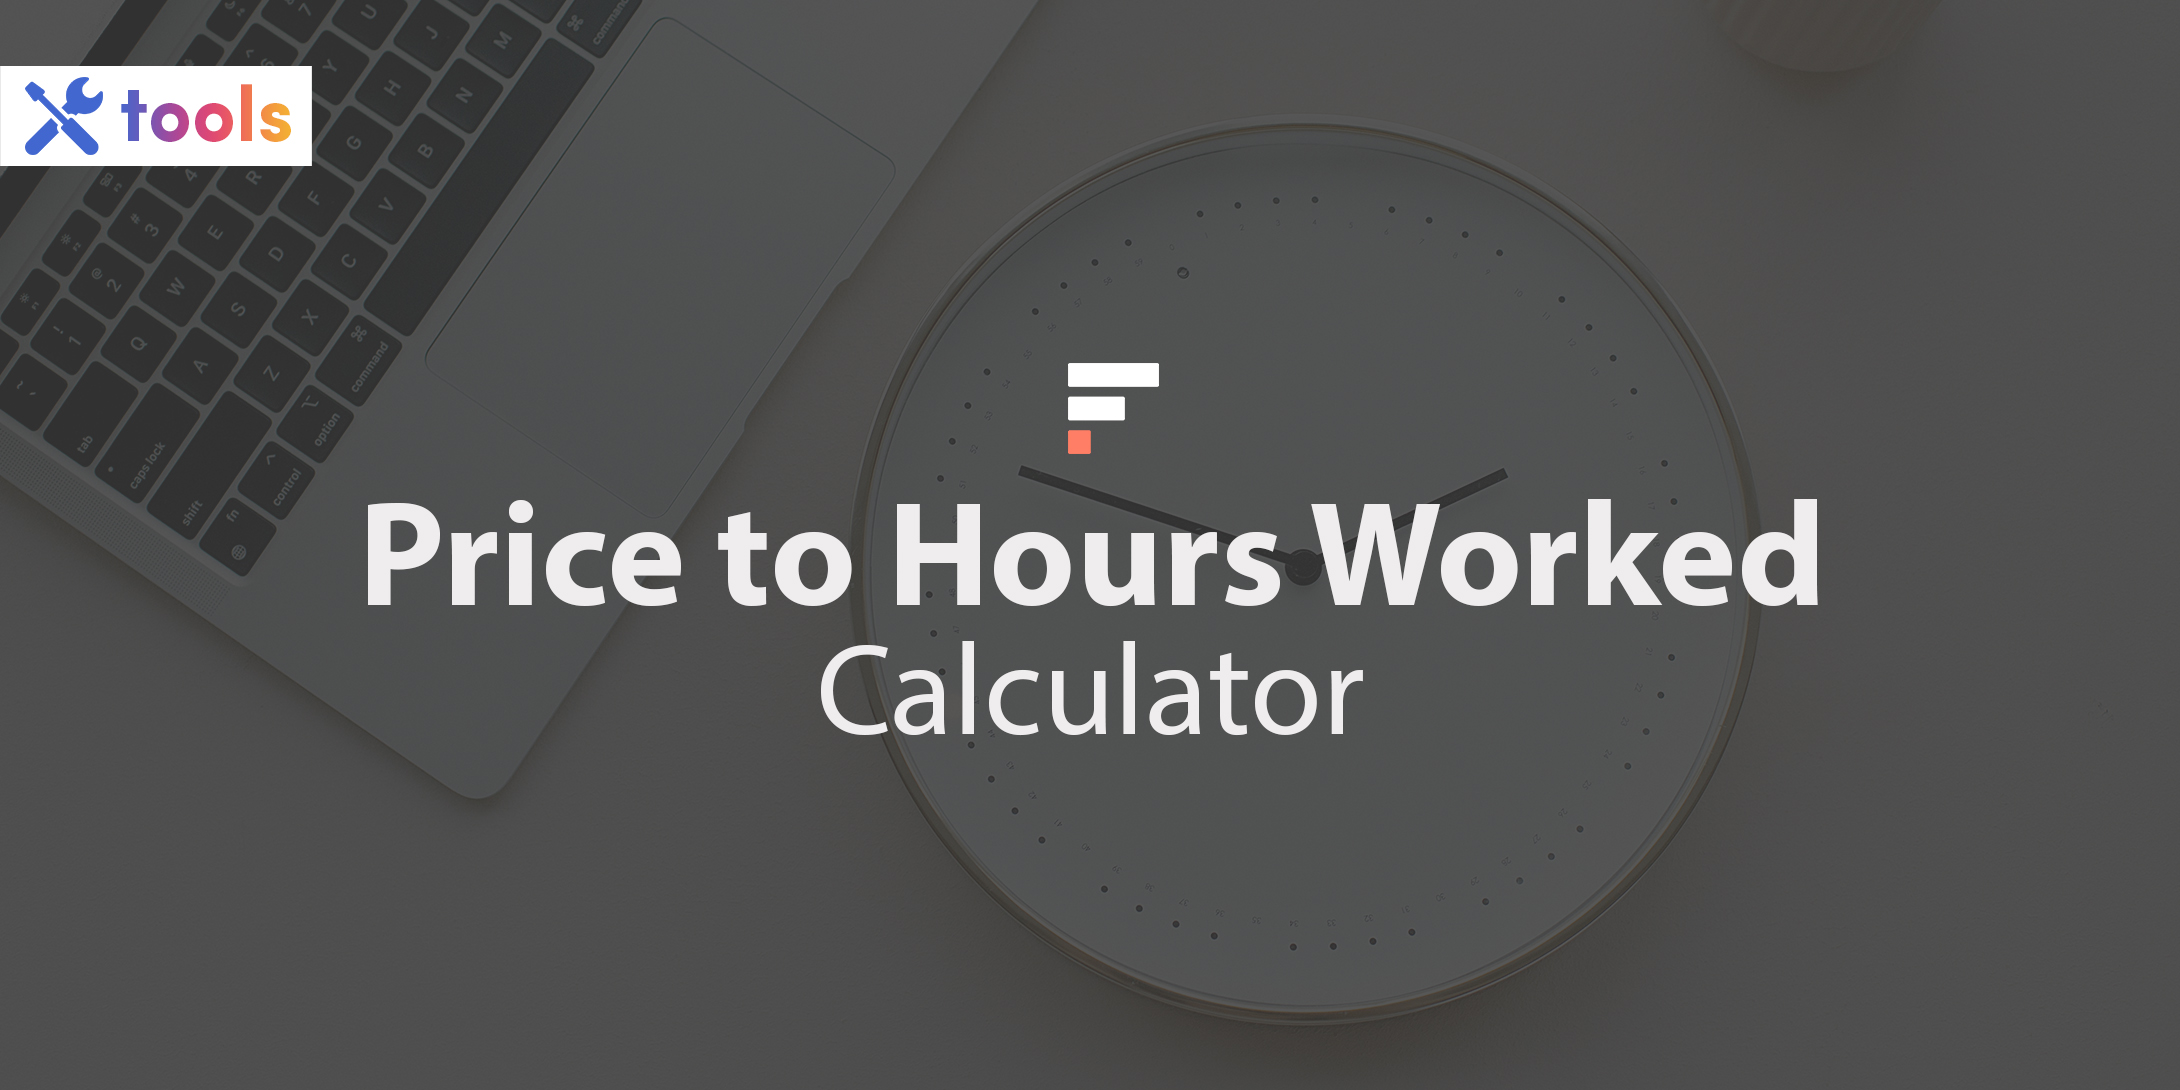 Price to hours worked calculator